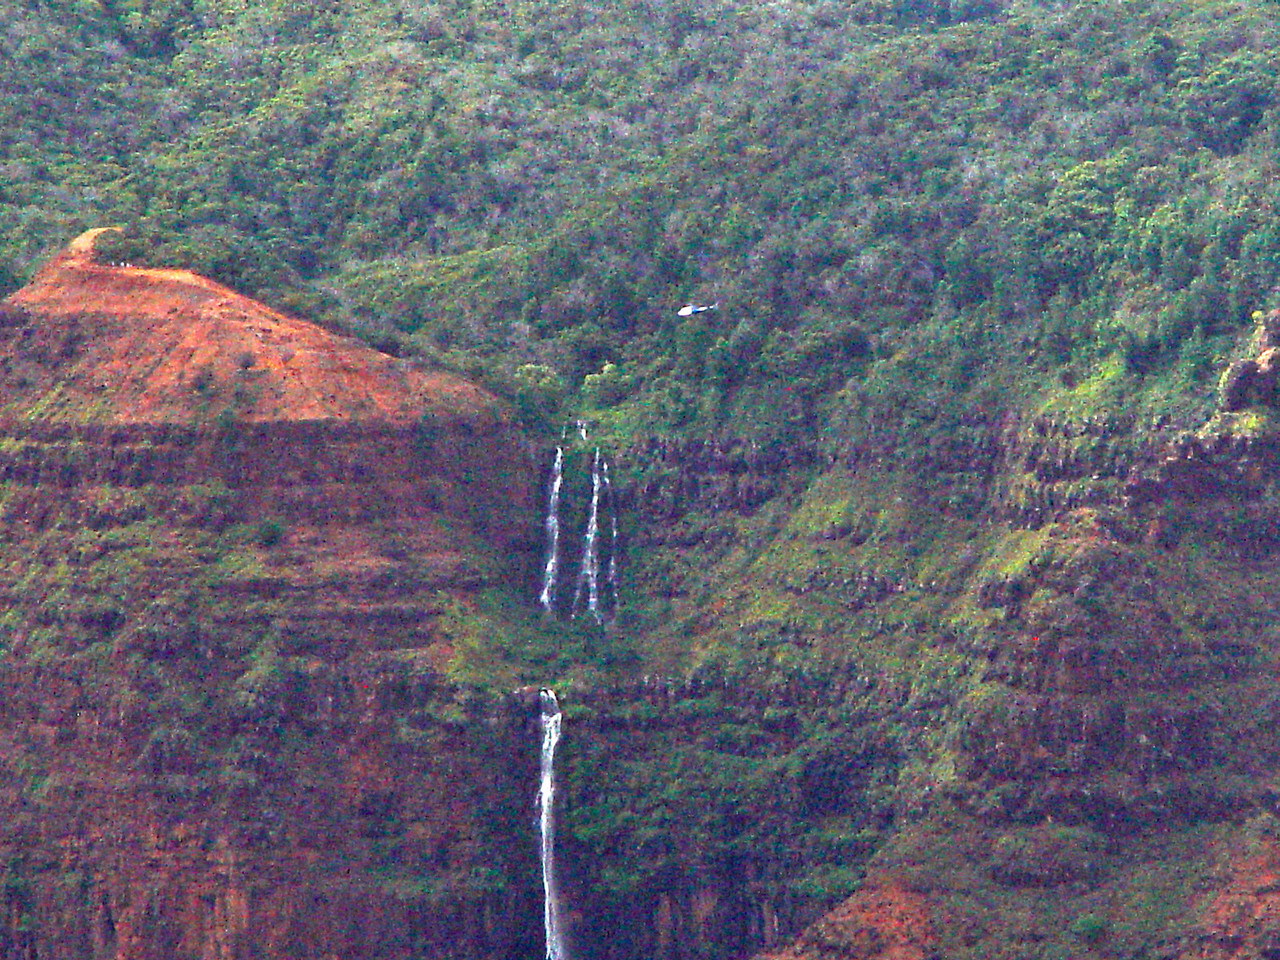 Note the helicopter just above and to the right of Waialae Falls.